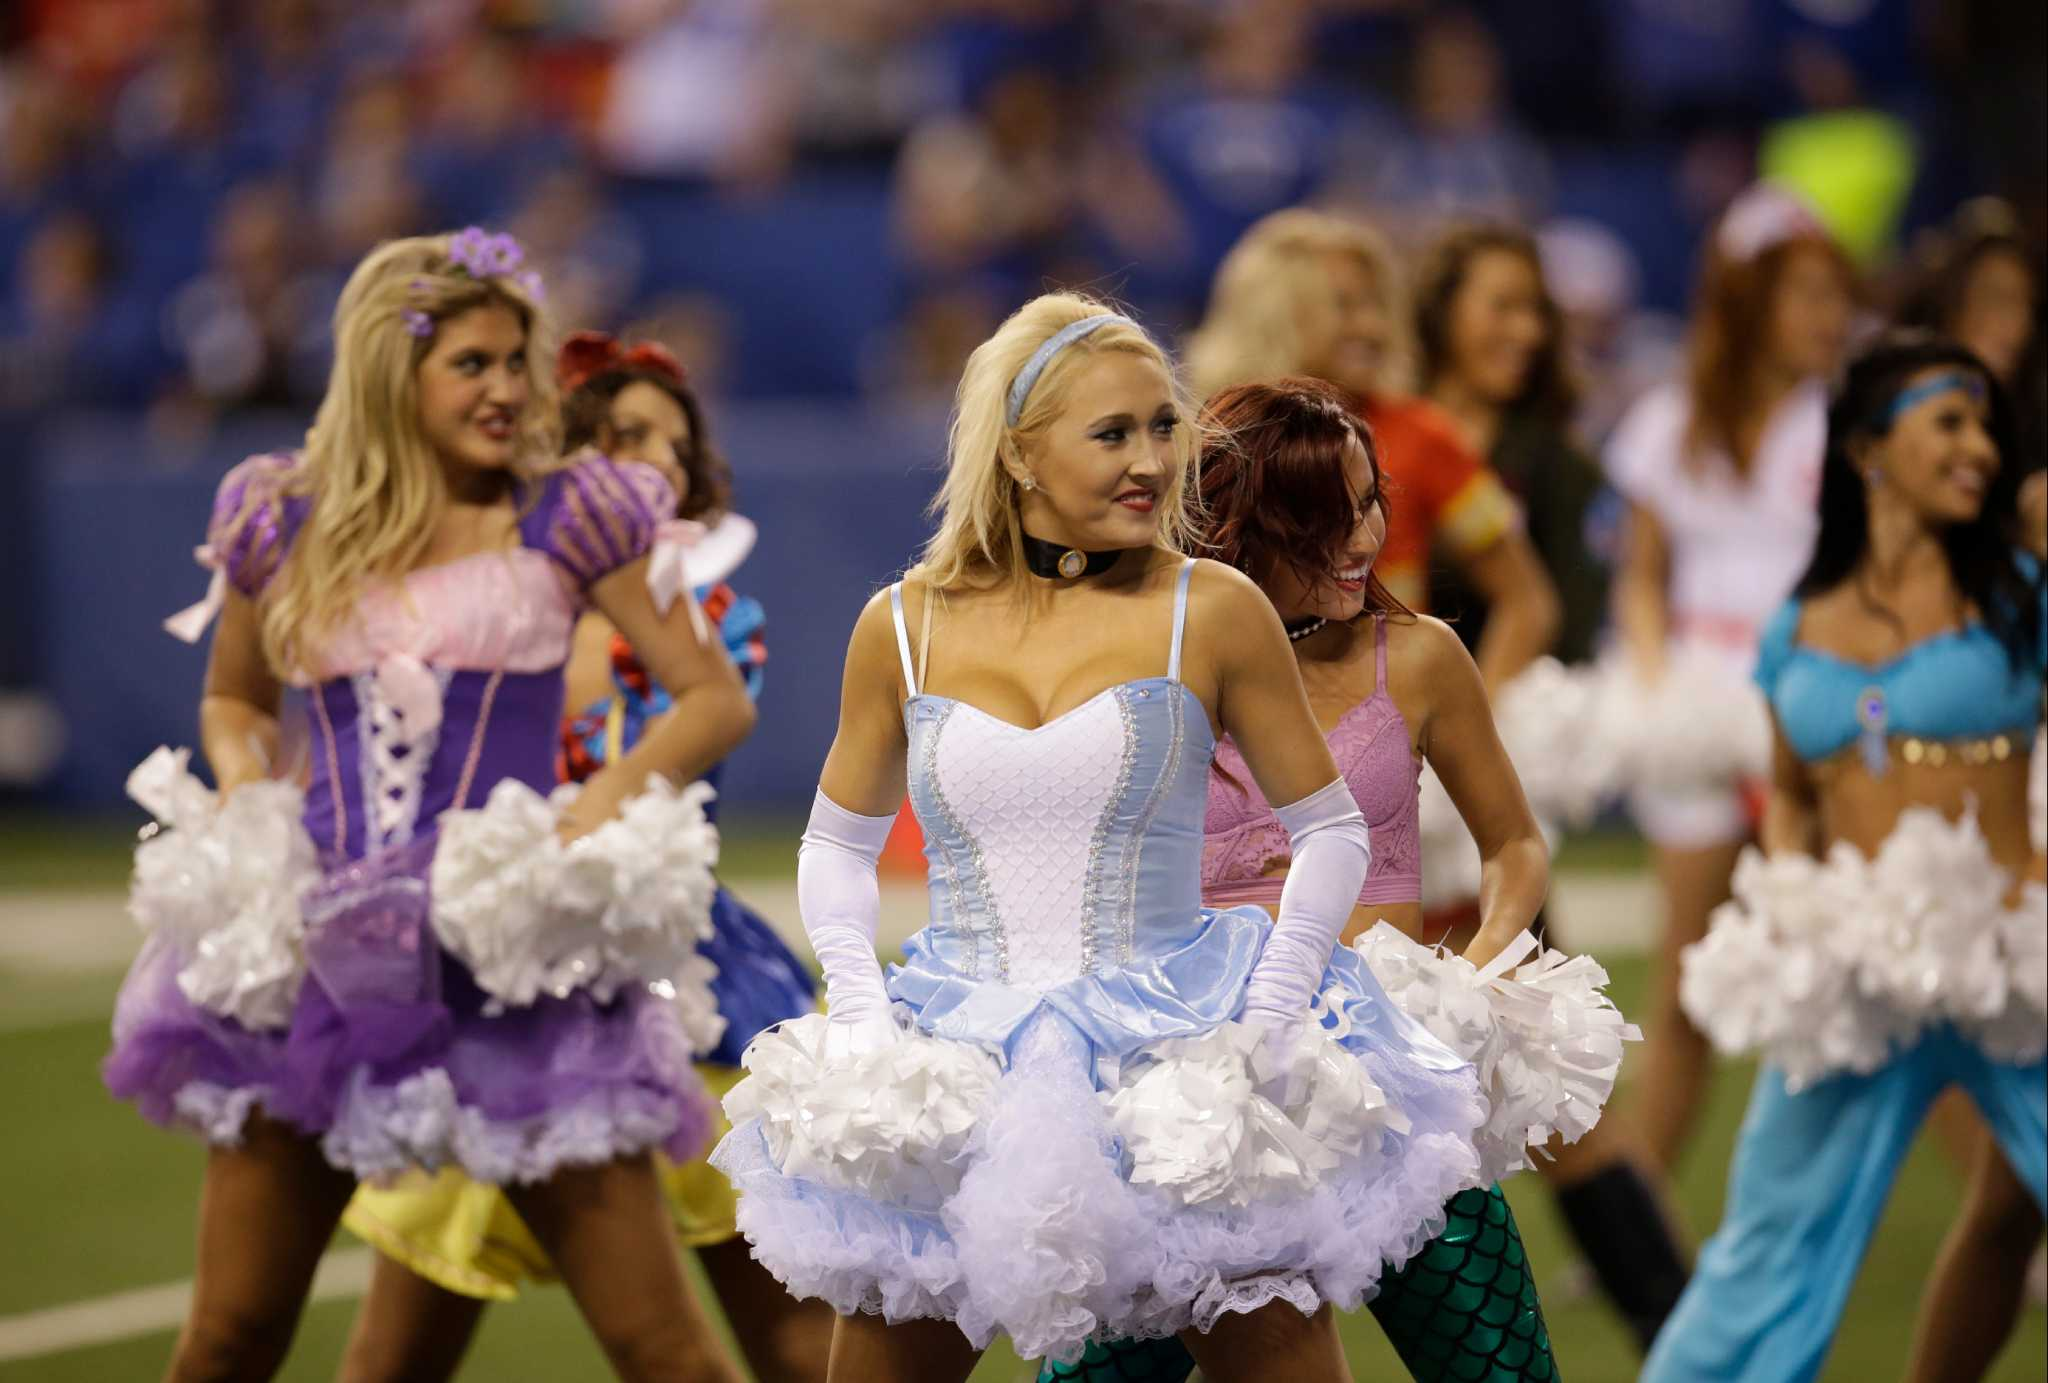 nfl cheerleaders dress up for halloween houston chronicle